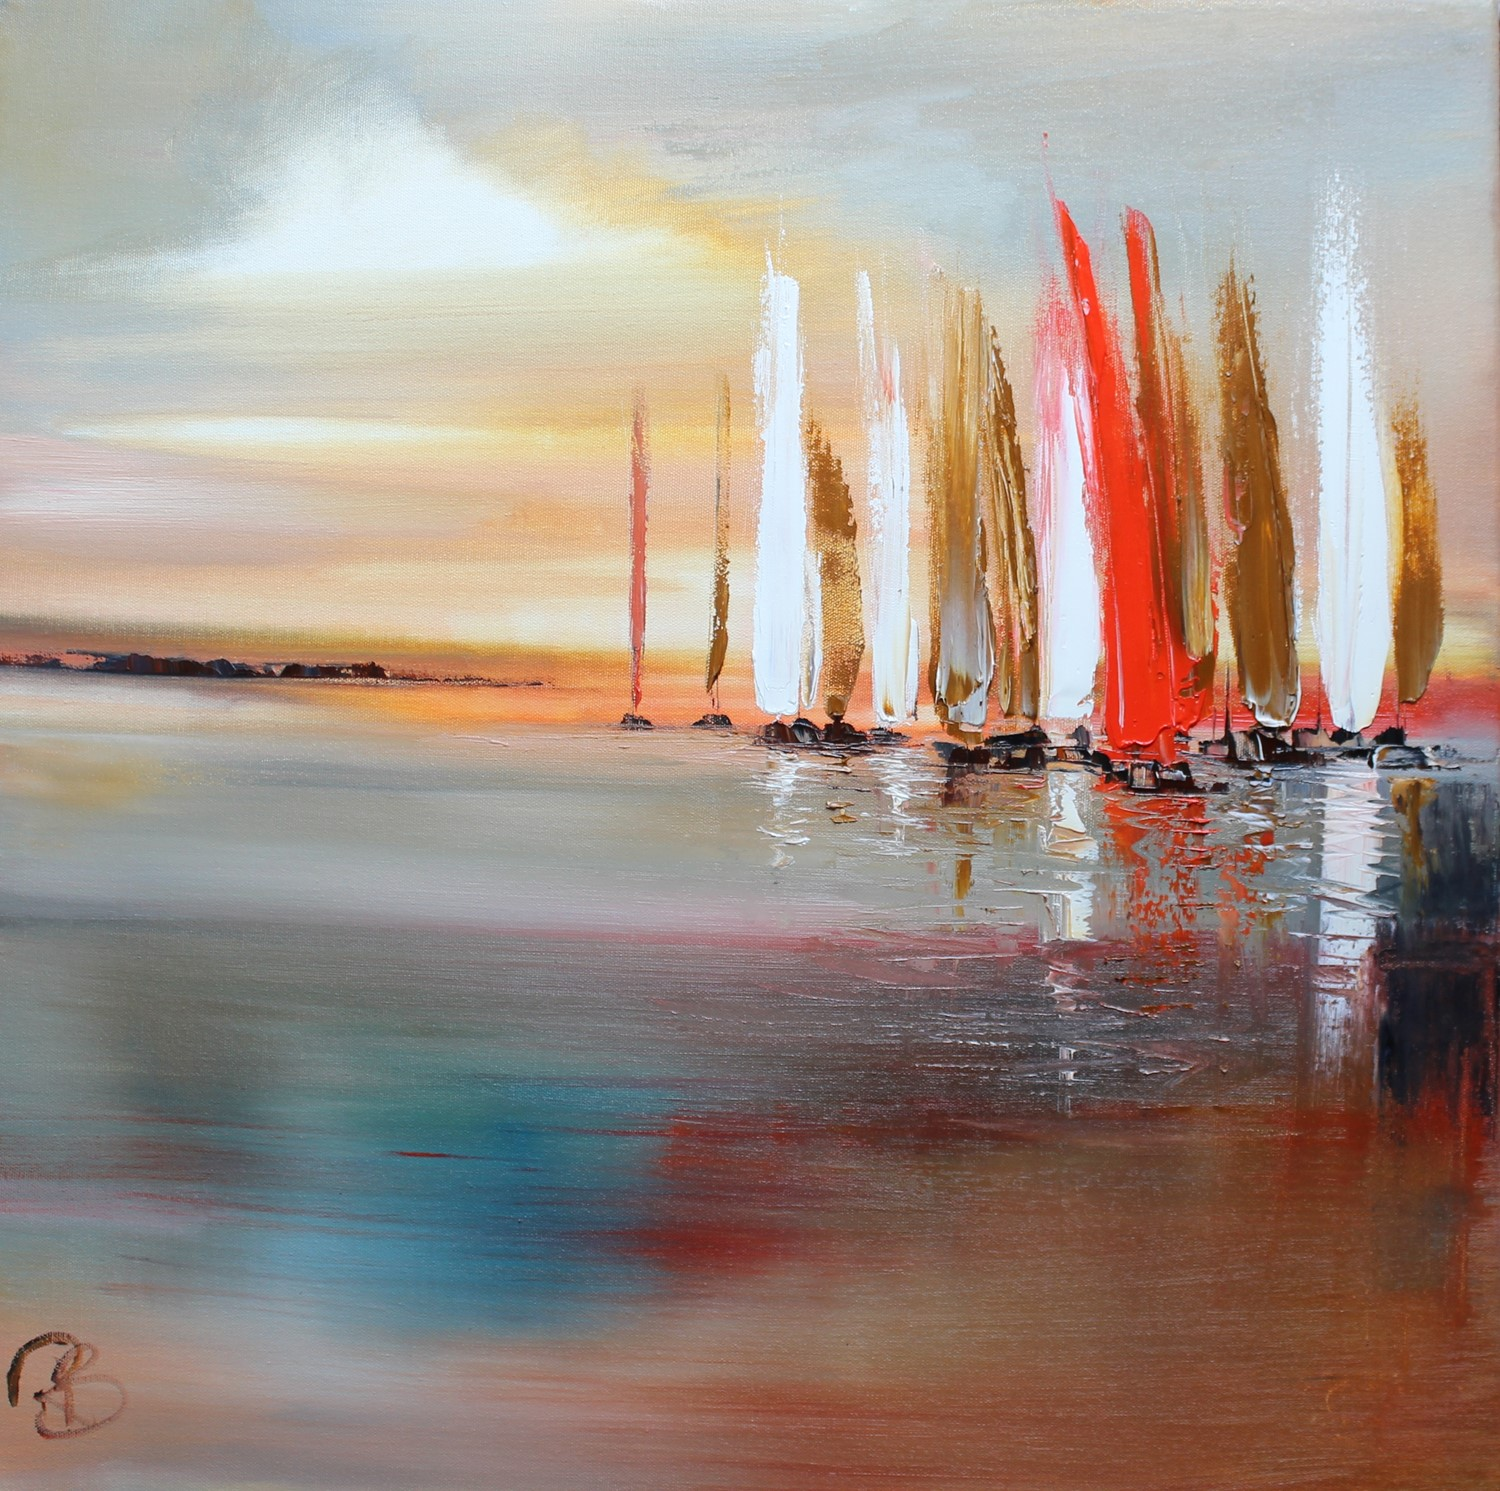 'At the Break of Day' by artist Rosanne Barr